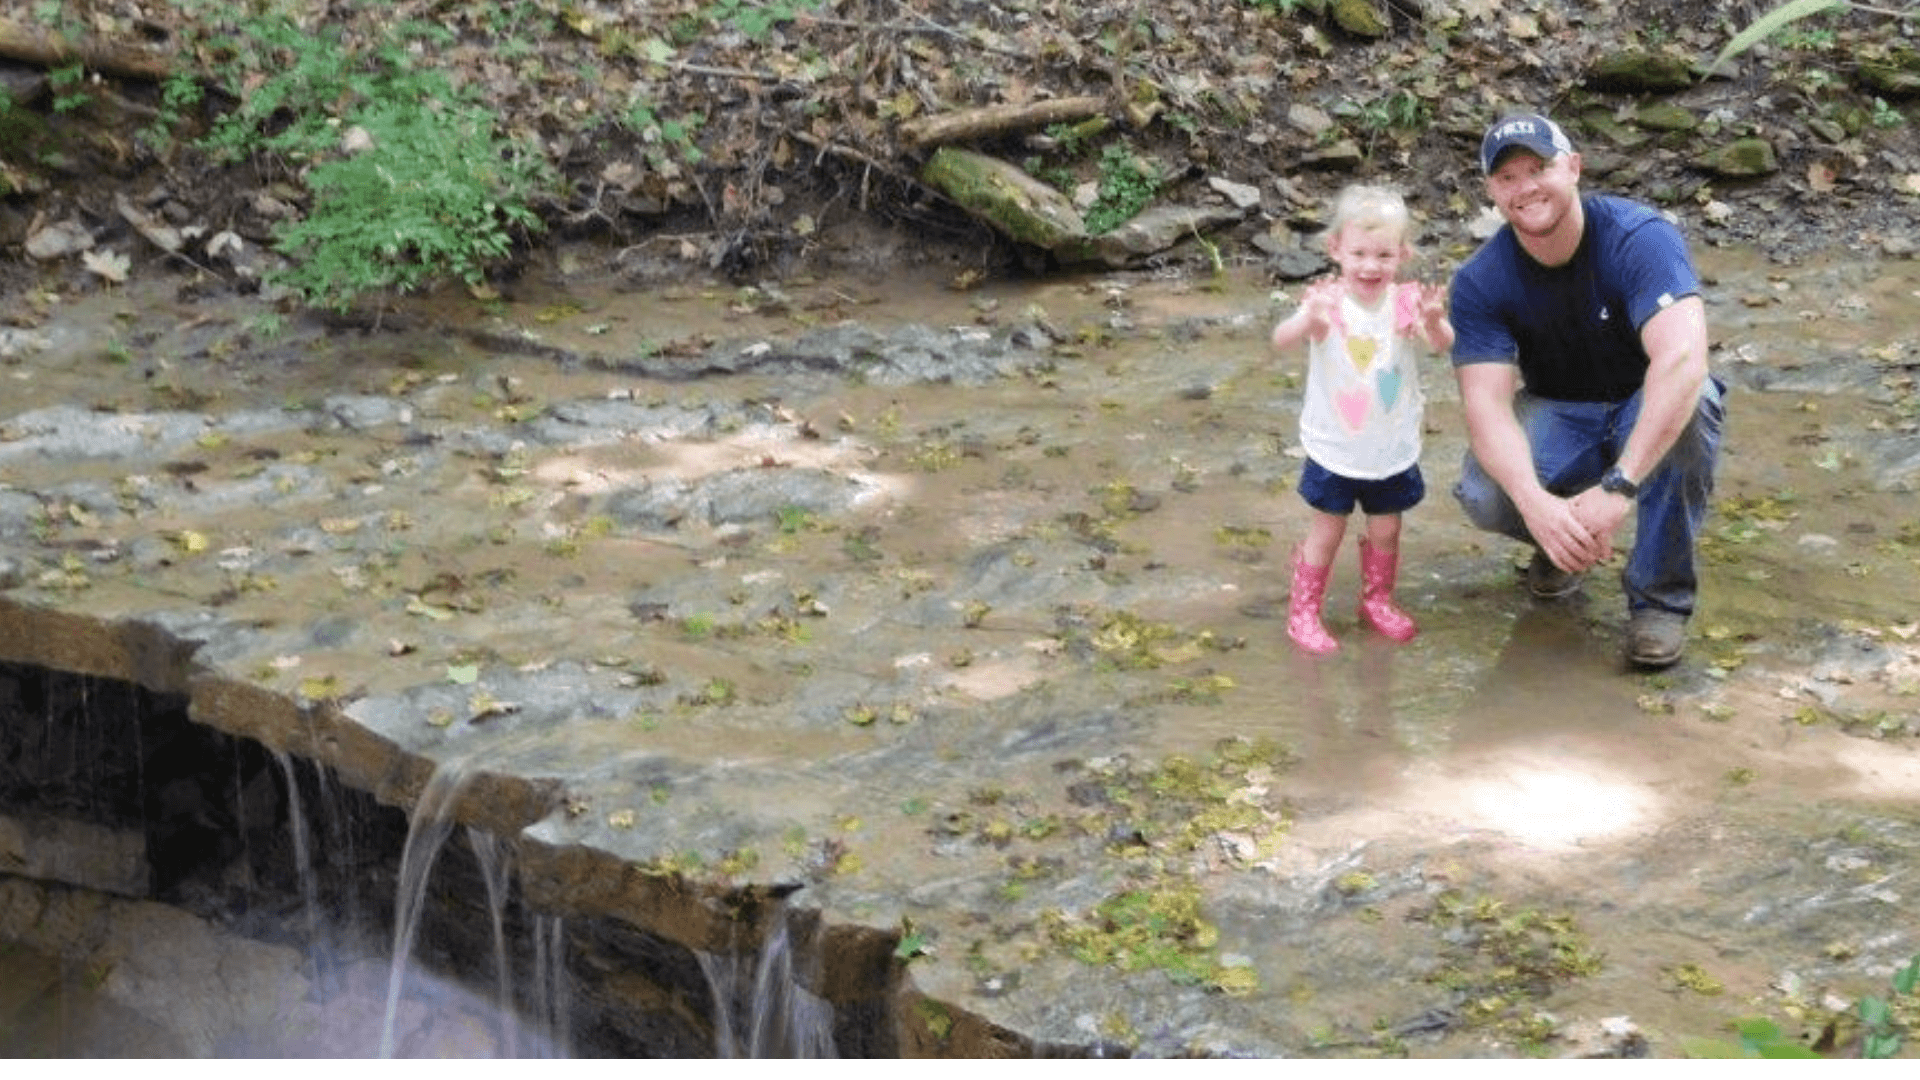 A family enjoying a waterfall on a hike - around the neighborhood Rivers Pointe Estates in Hebron, Kentucky